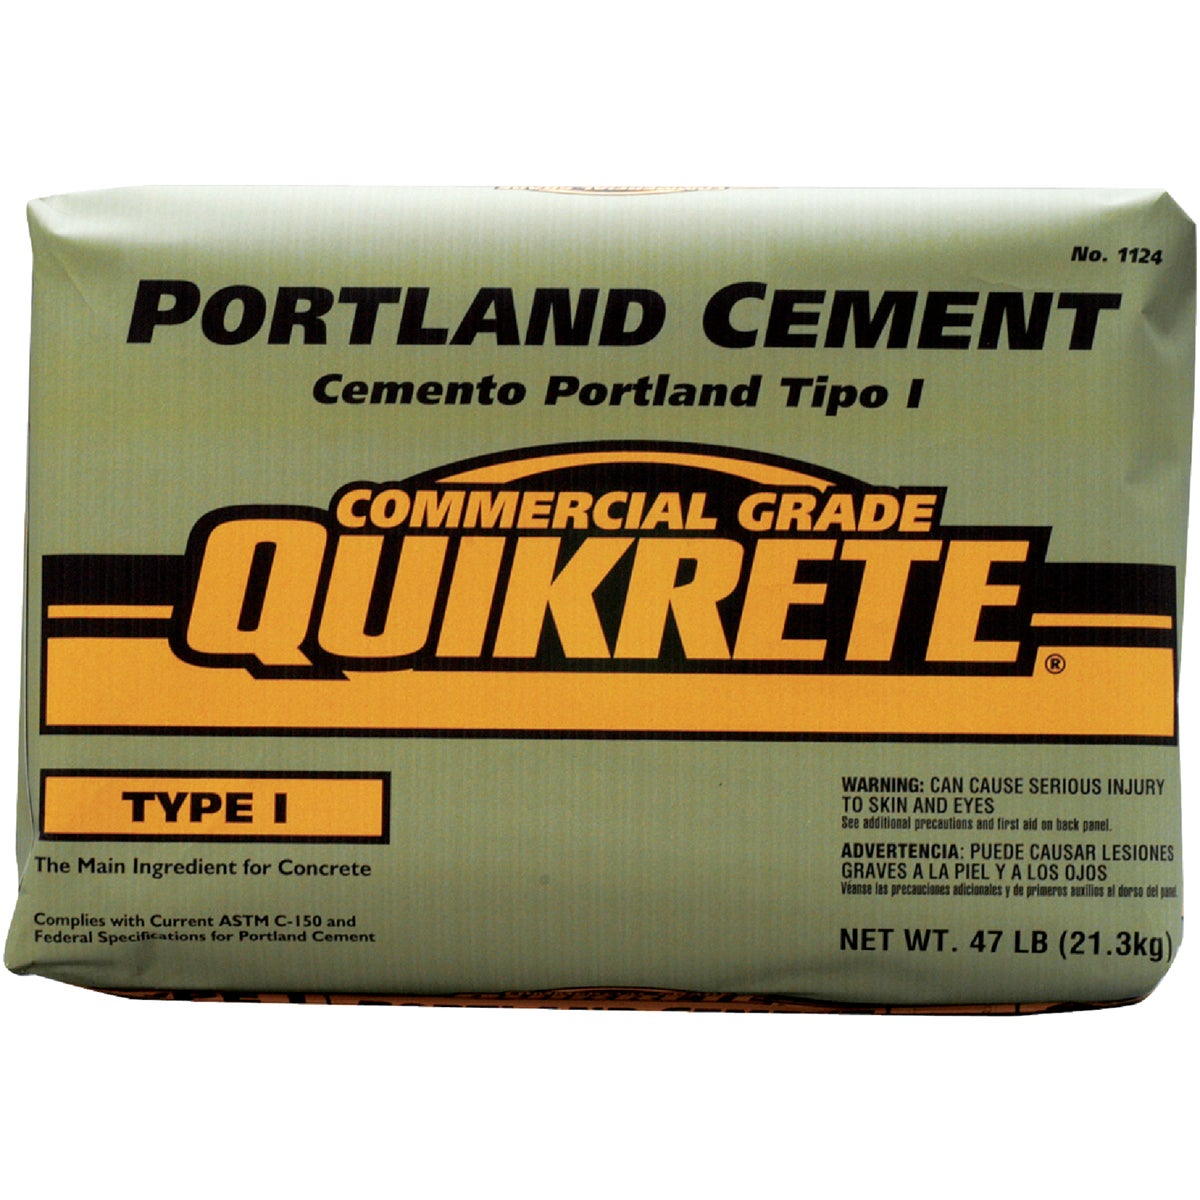 47LB PORTLAND CEMENT - 1124-47 by Quikrete Co